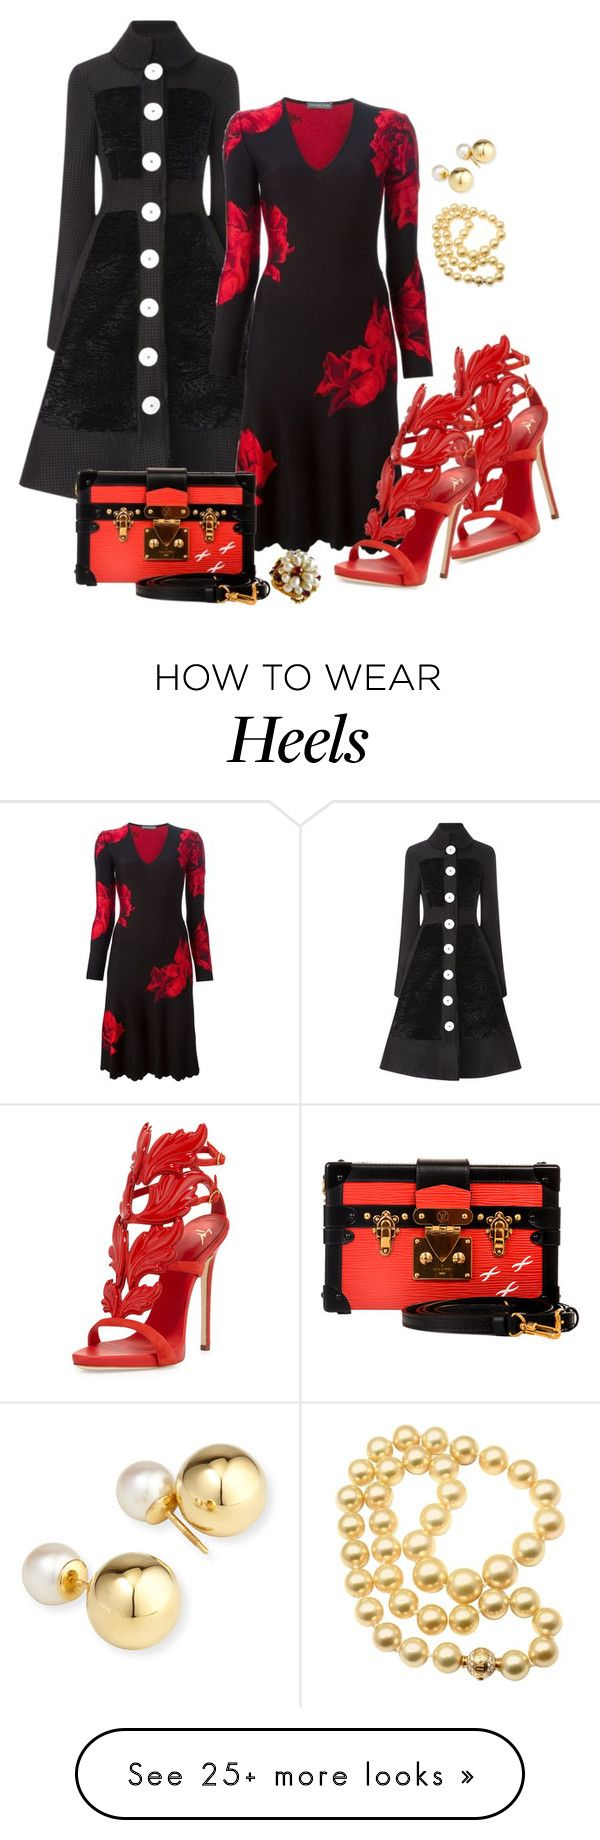 """Red High Heels"" by fantasiegirl on Polyvore featuring A.W.A.K.E., Alexander McQueen, Giuseppe Zanotti, Louis Vuitton, Yoko London and Mikimoto"